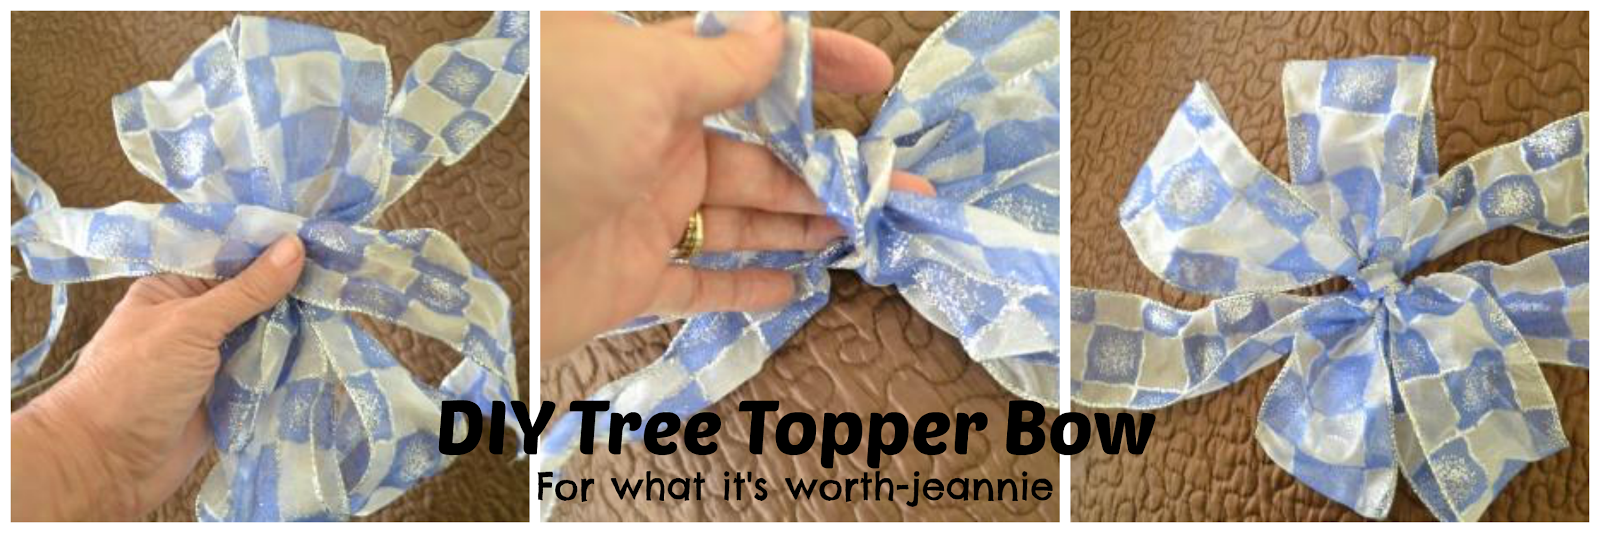 DIY bow tree topper